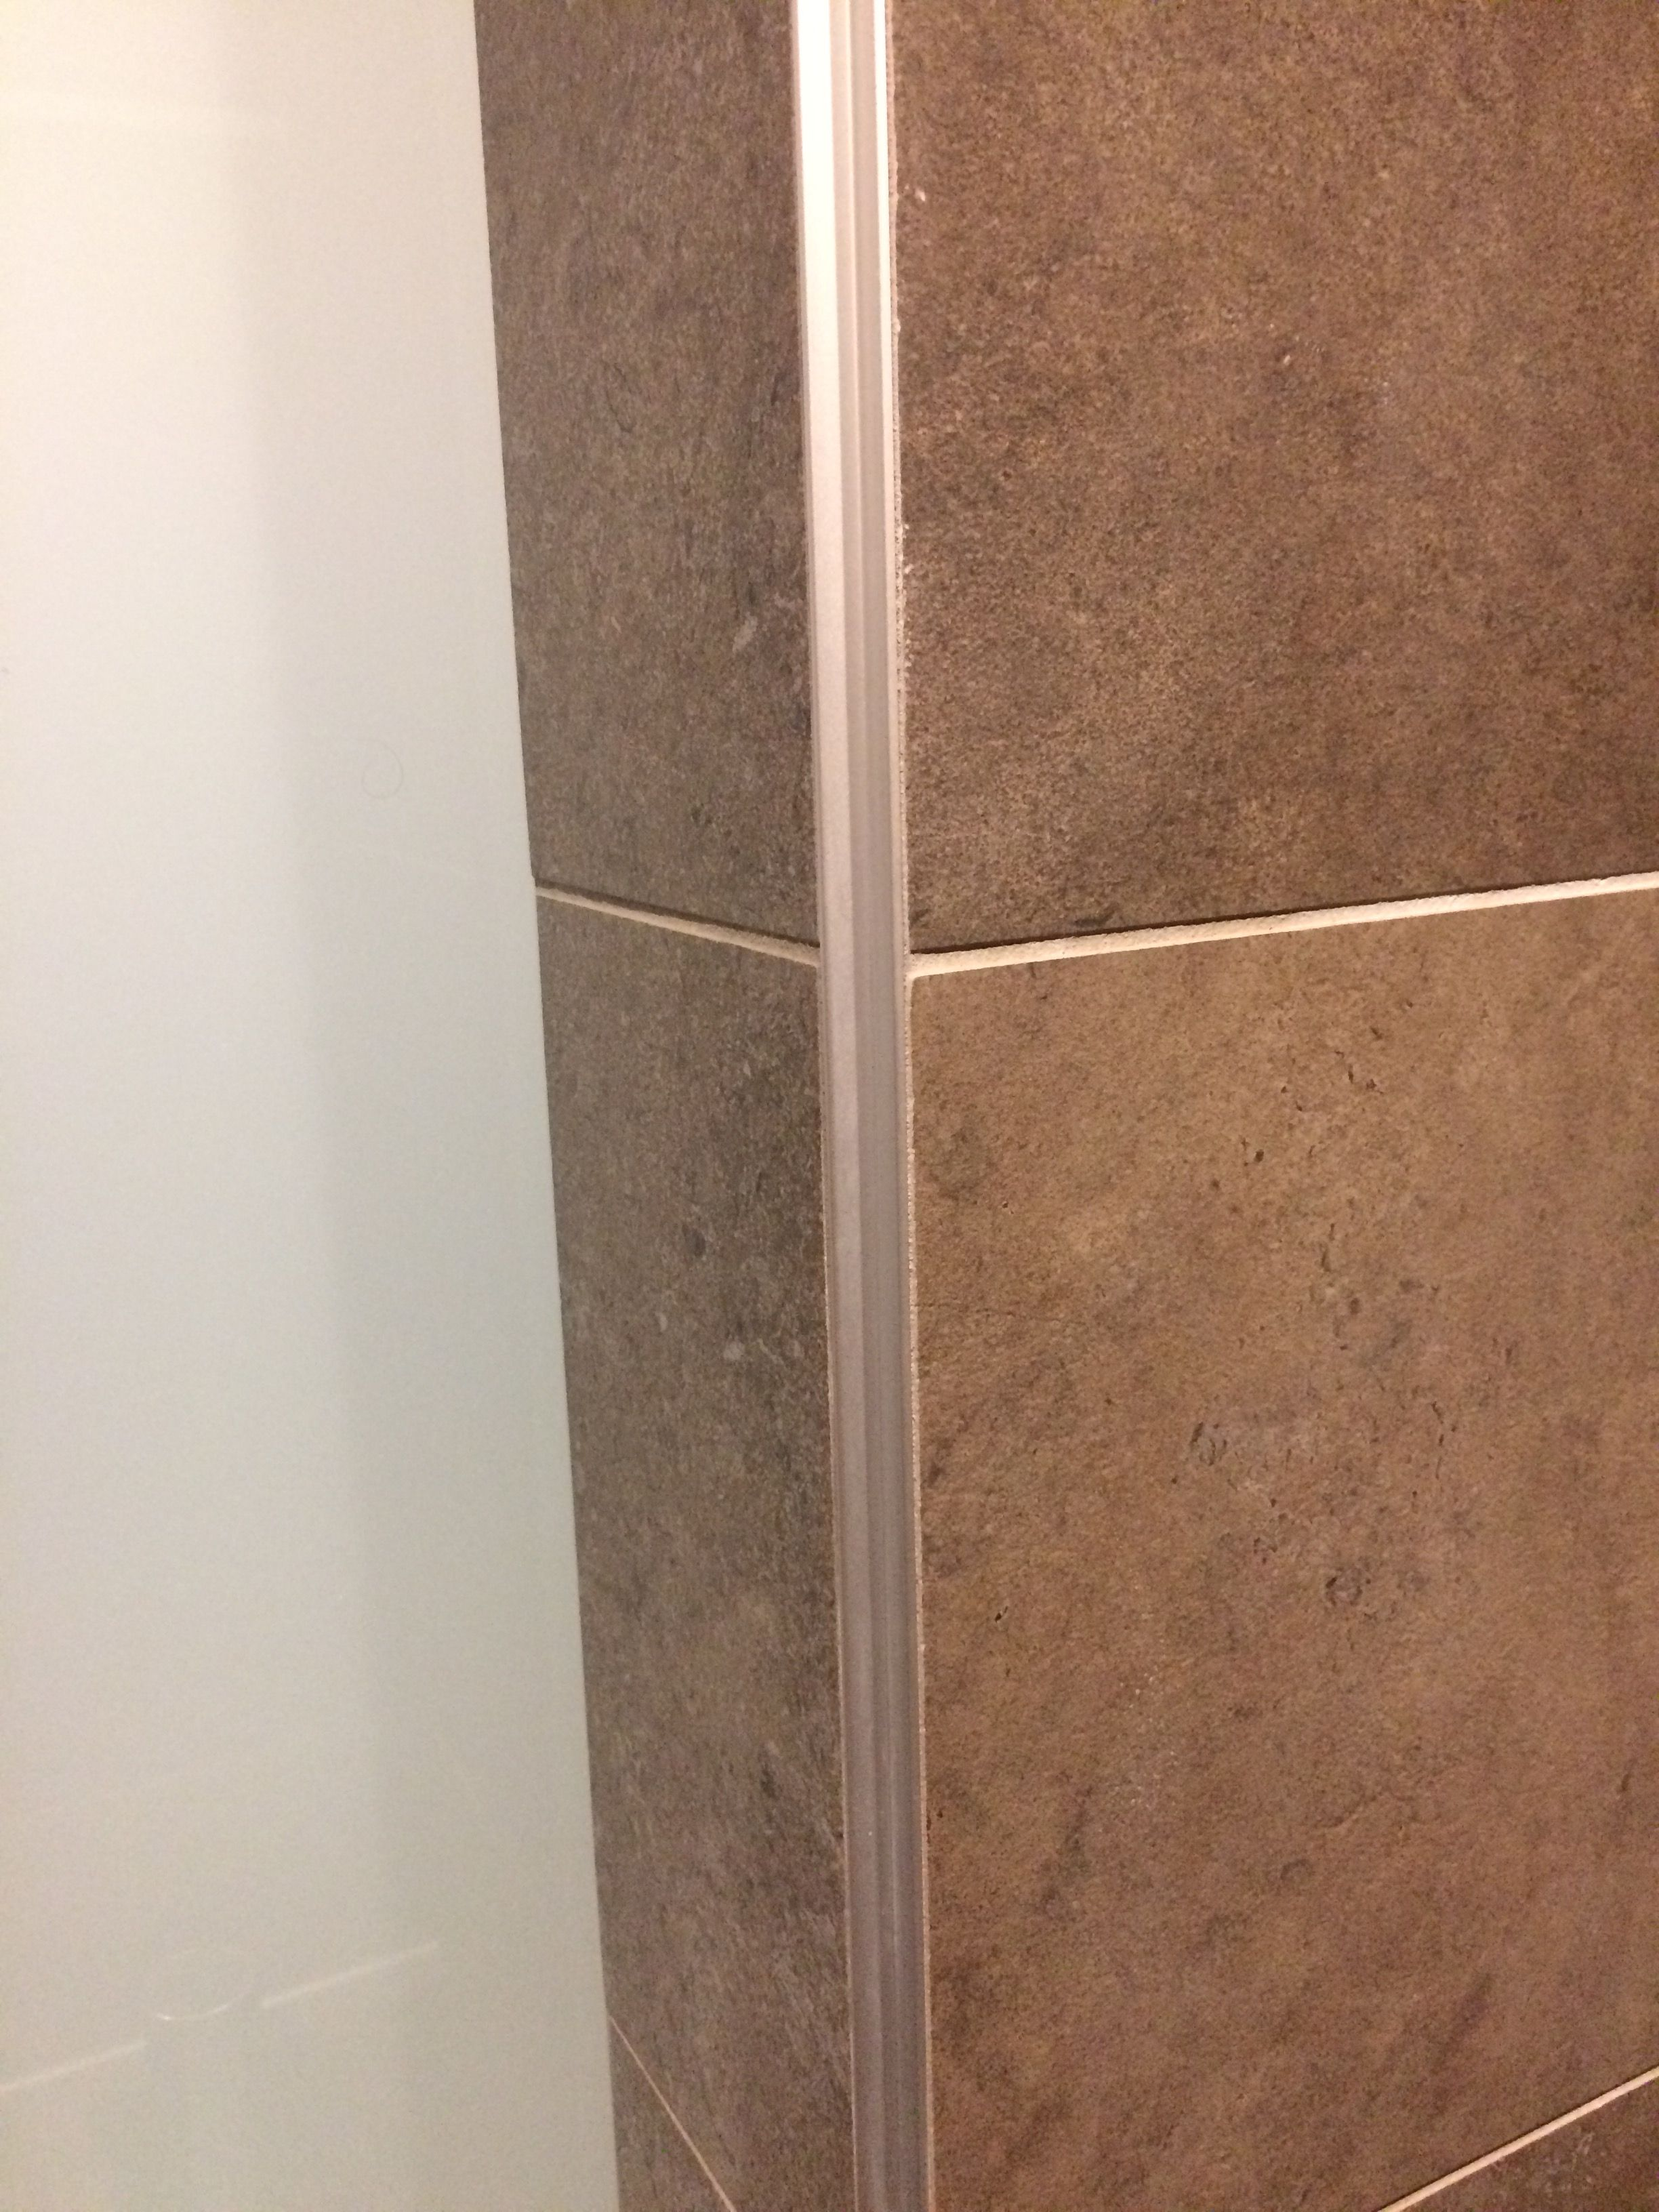 Ryan Likes The Schluter Systems Tile Edging Clean Durable Nice Lines For All Tile Areas In The Home Remodelacao